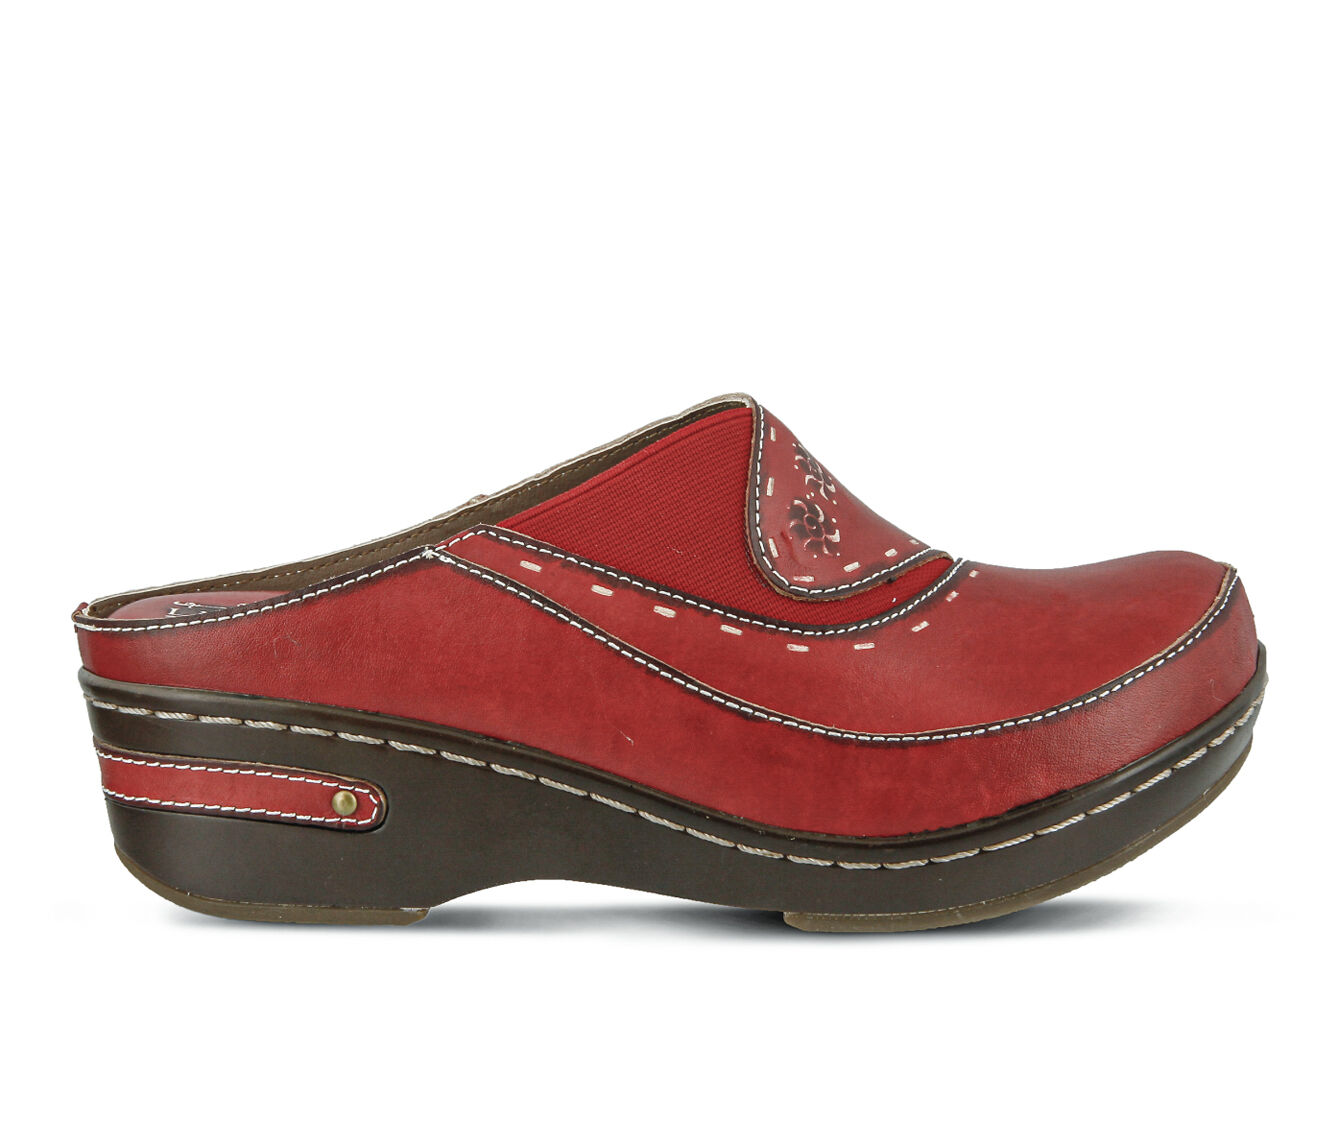 Women's L'ARTISTE Chino Clogs Red